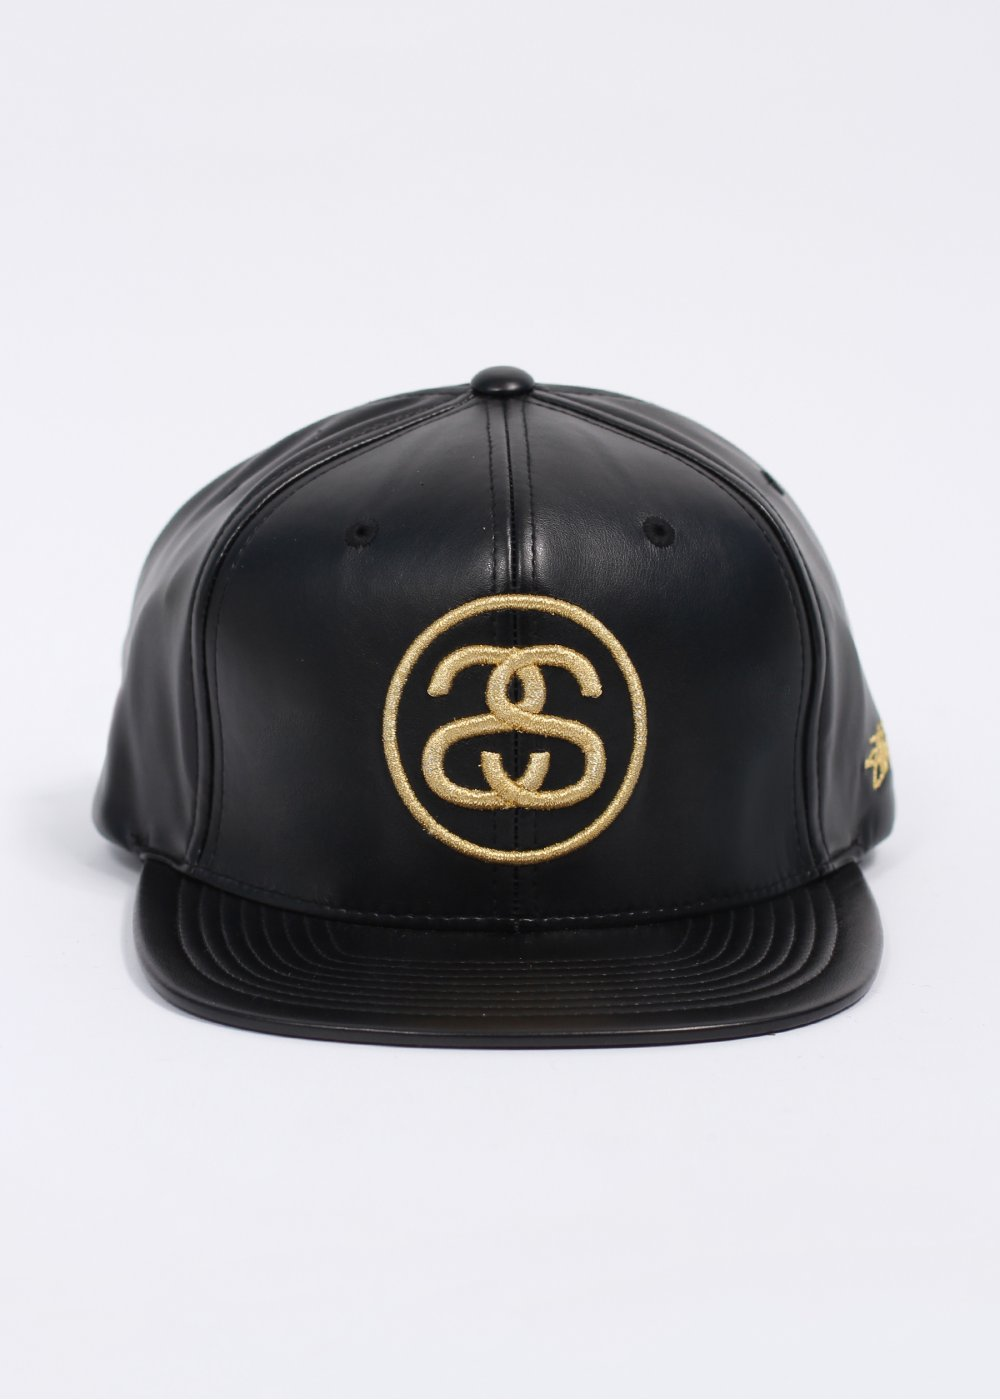 Stussy SS Link Leather Ball Cap - Black   Gold 642d08693059